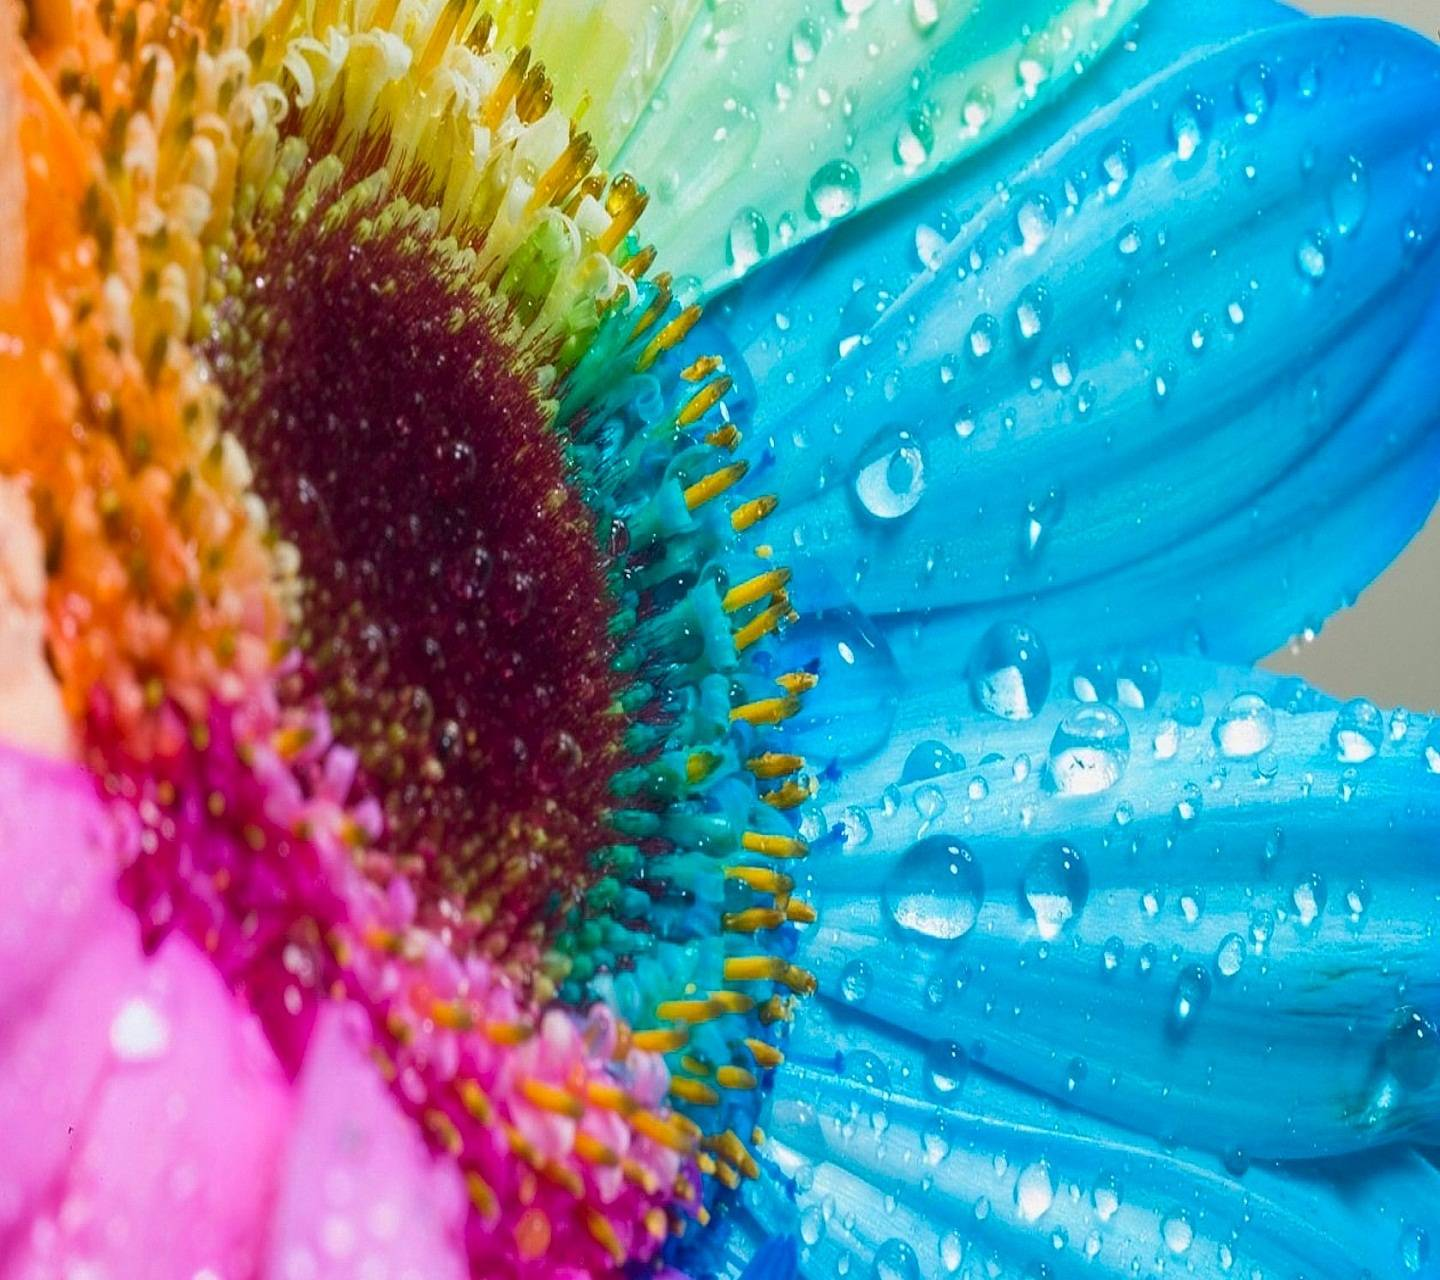 Hd Colorful Flower